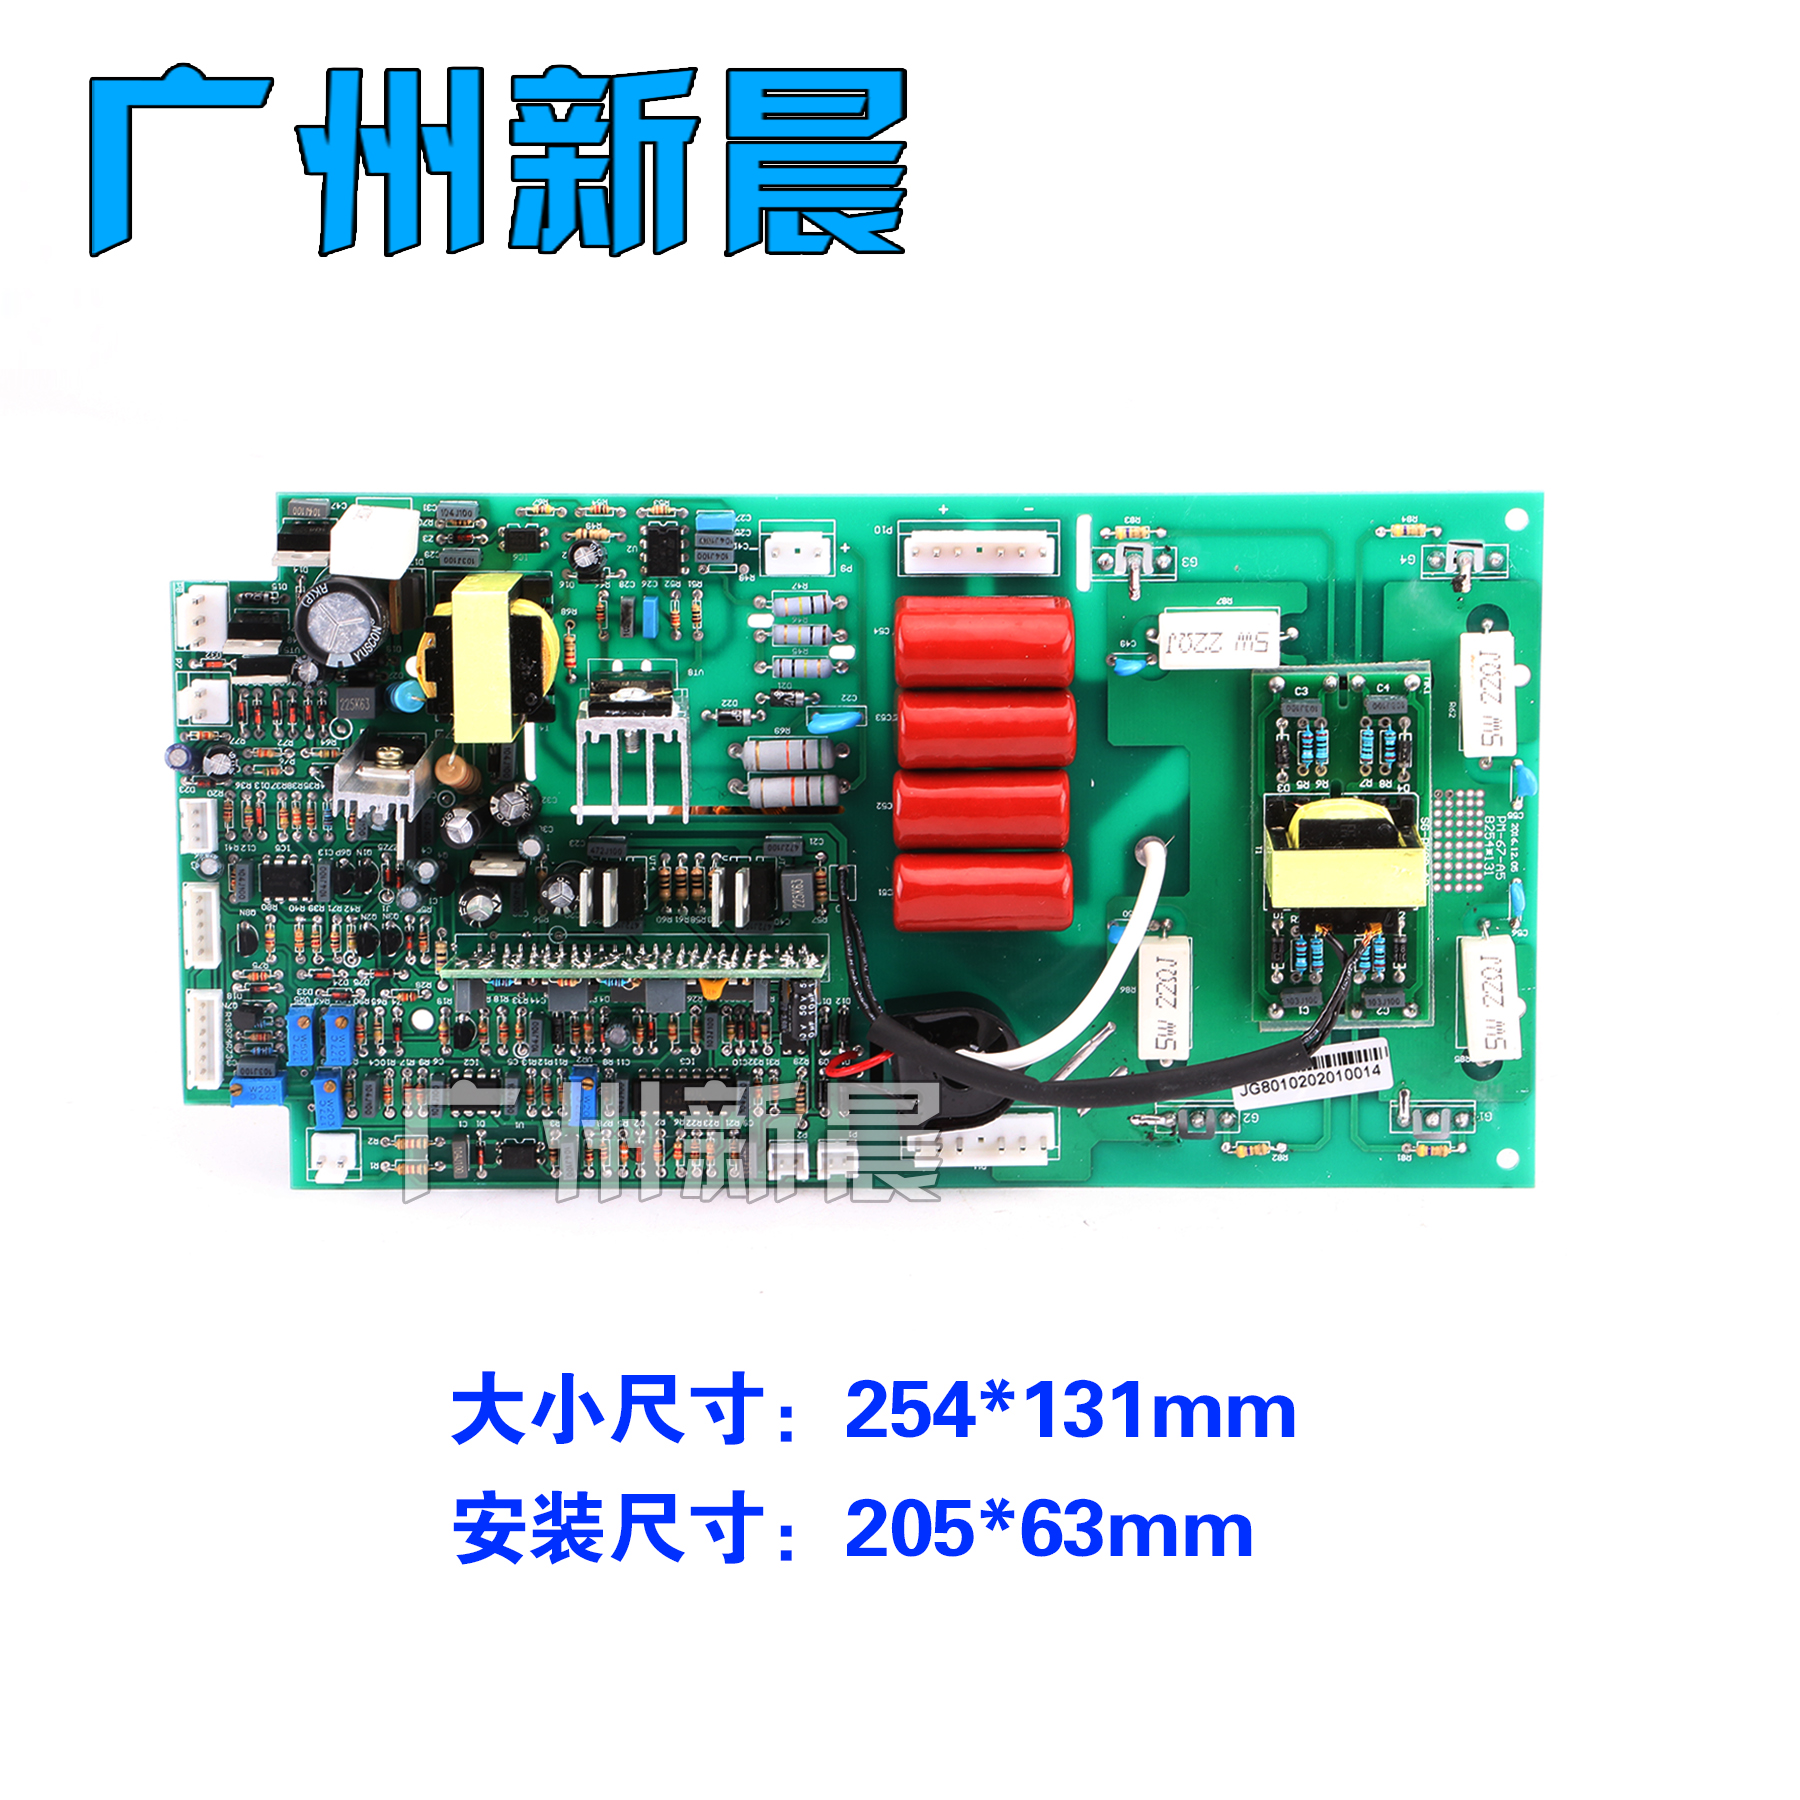 DC Welding Machine Circuit Board Accessories Single Tube 1 GBT Dual Power ZX7-315/400 Upper Plate Inverter Board zx7 250s single tube igbt double voltage dc welding inverter upper board control board circuit board maintenance replacement